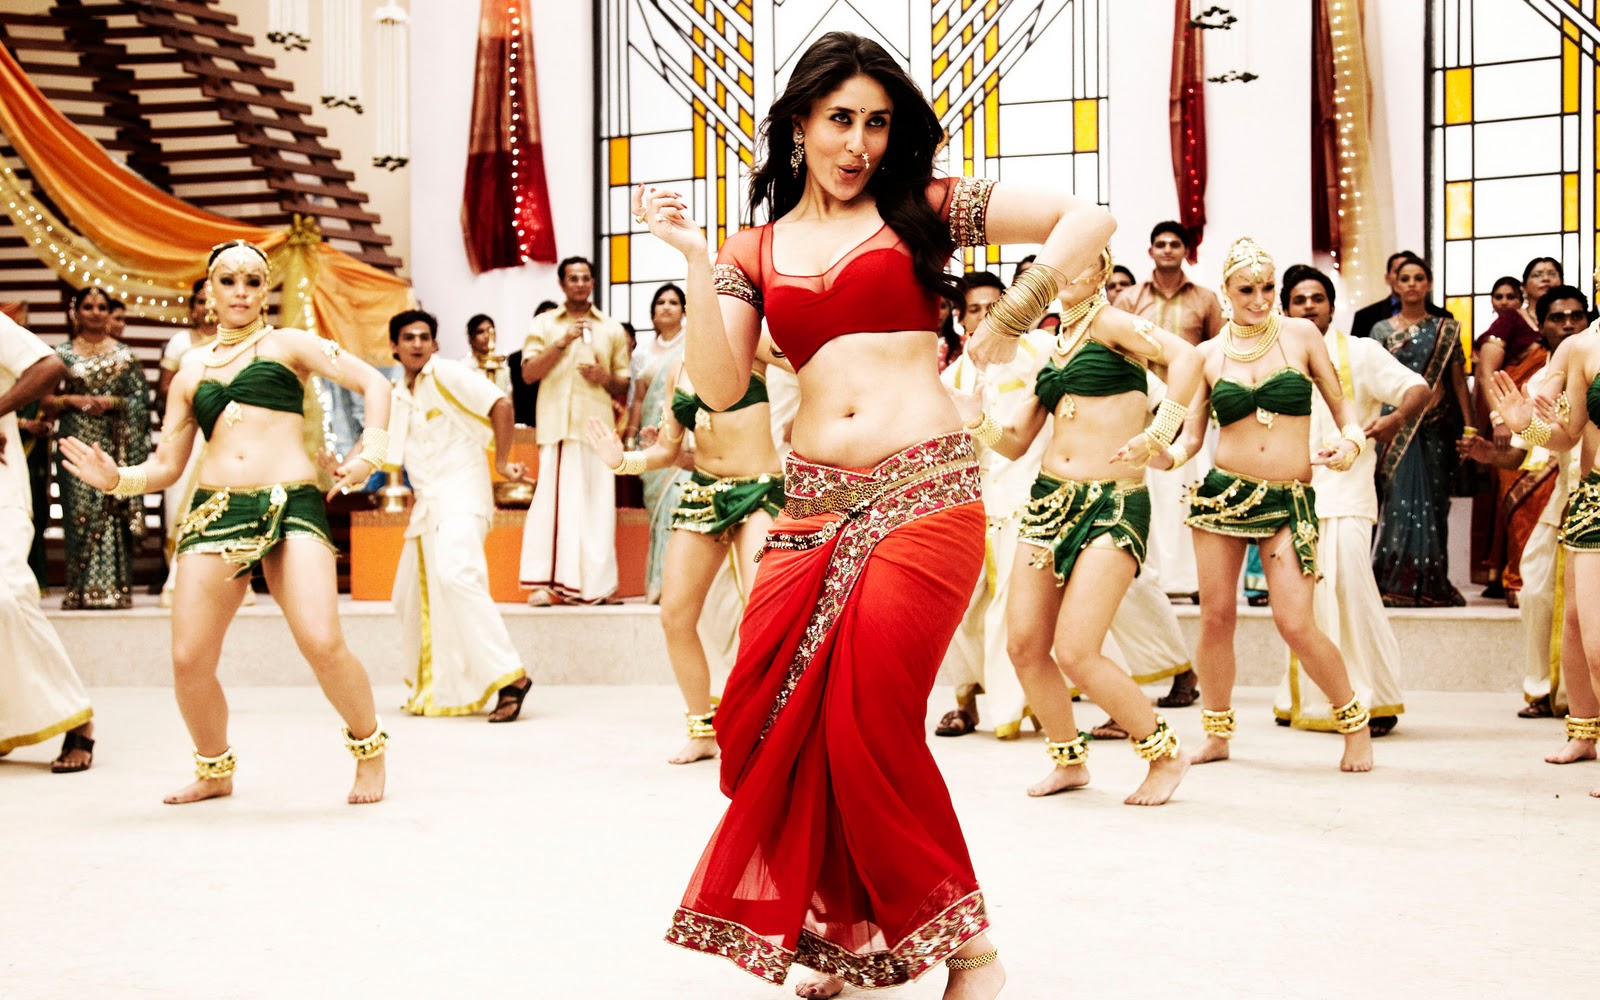 http://3.bp.blogspot.com/-DQiGUeToHnc/TqmhovCHz0I/AAAAAAAAAvA/43yUoI6c-Vs/s1600/kareena+kapoor+ra.one+movie+hd+wallpapers.jpg